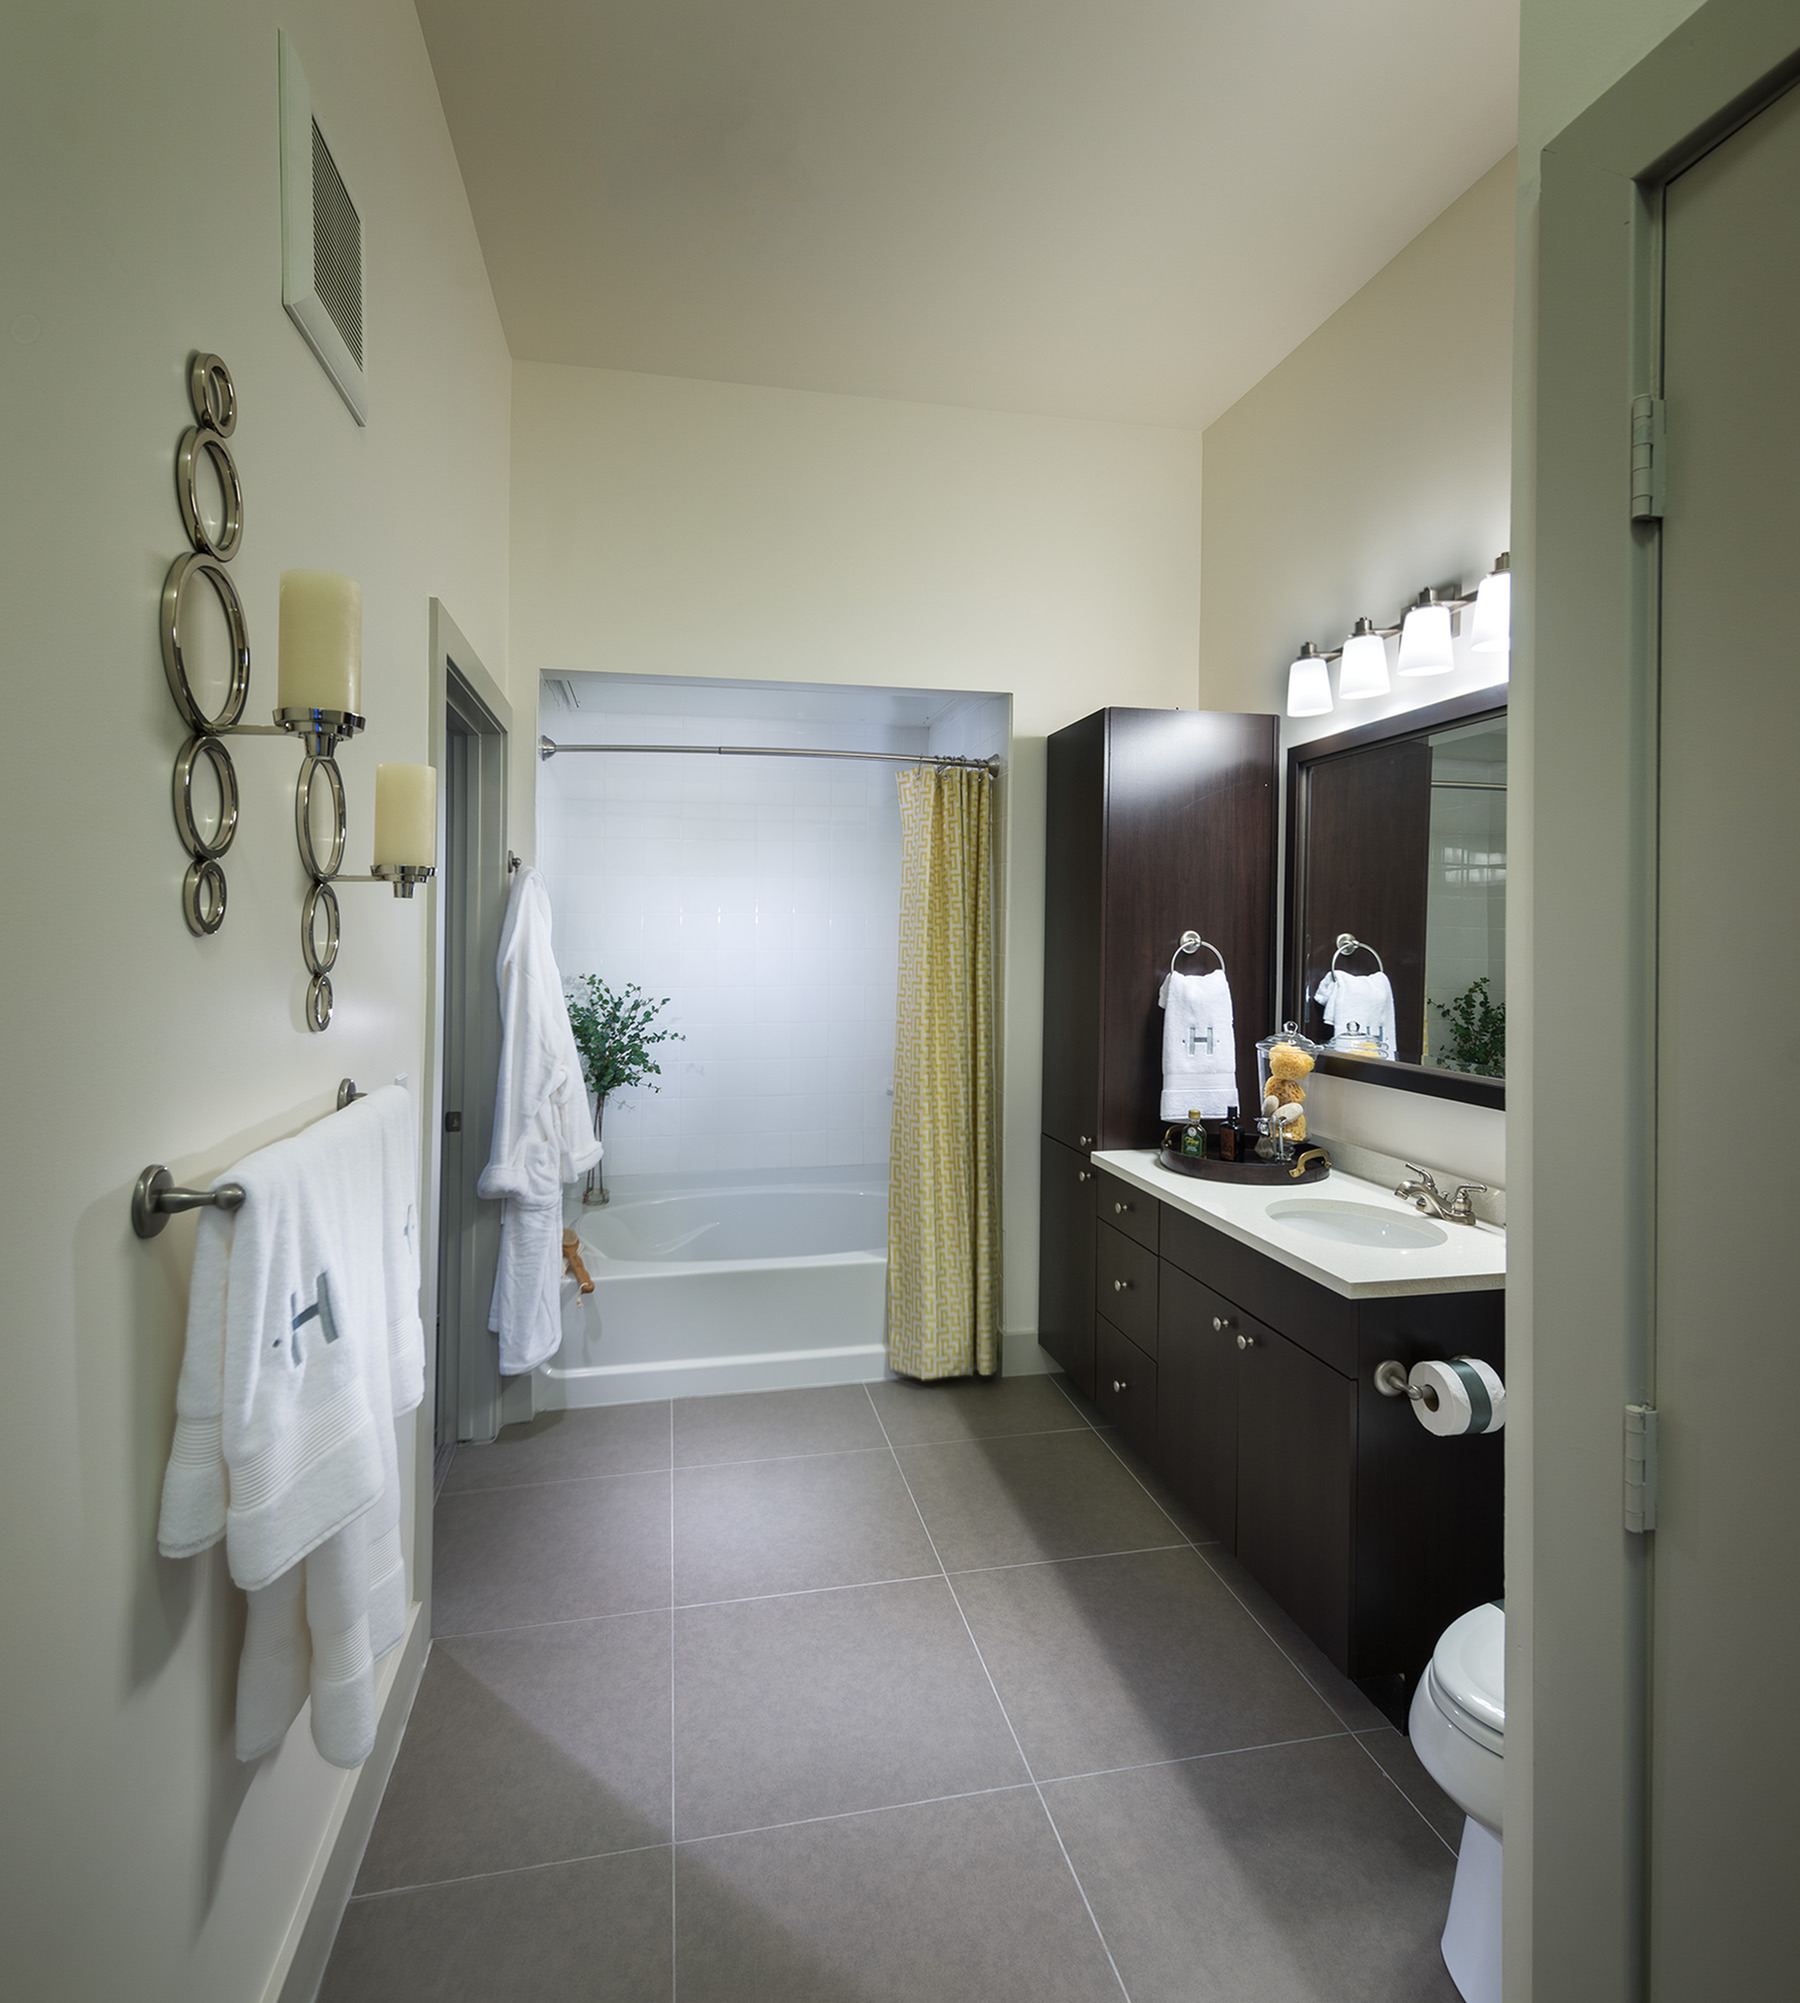 Image of Spa-like bathrooms with oversized soaking tubs for Hanover Foxborough